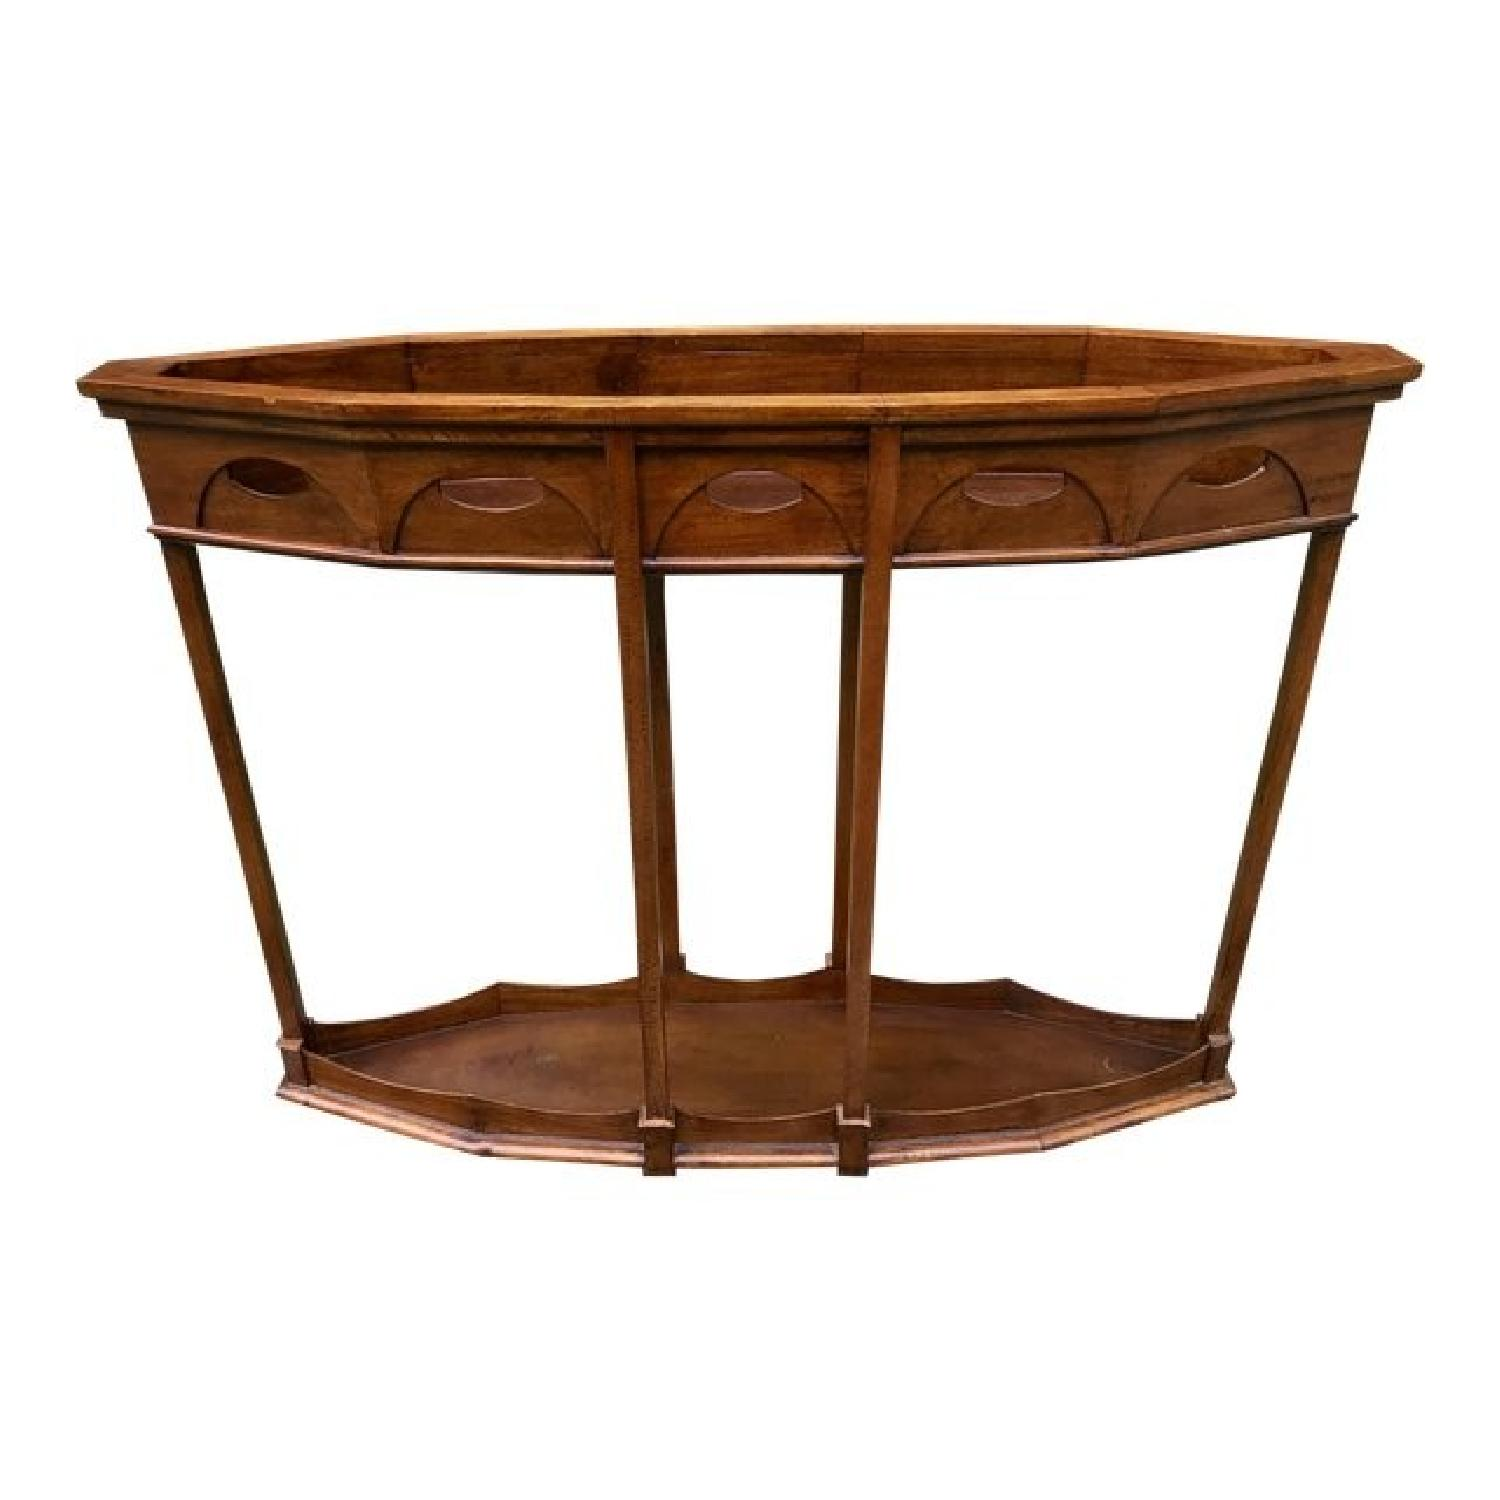 Vintage Ornate Console Table W/ Recessed Top ...